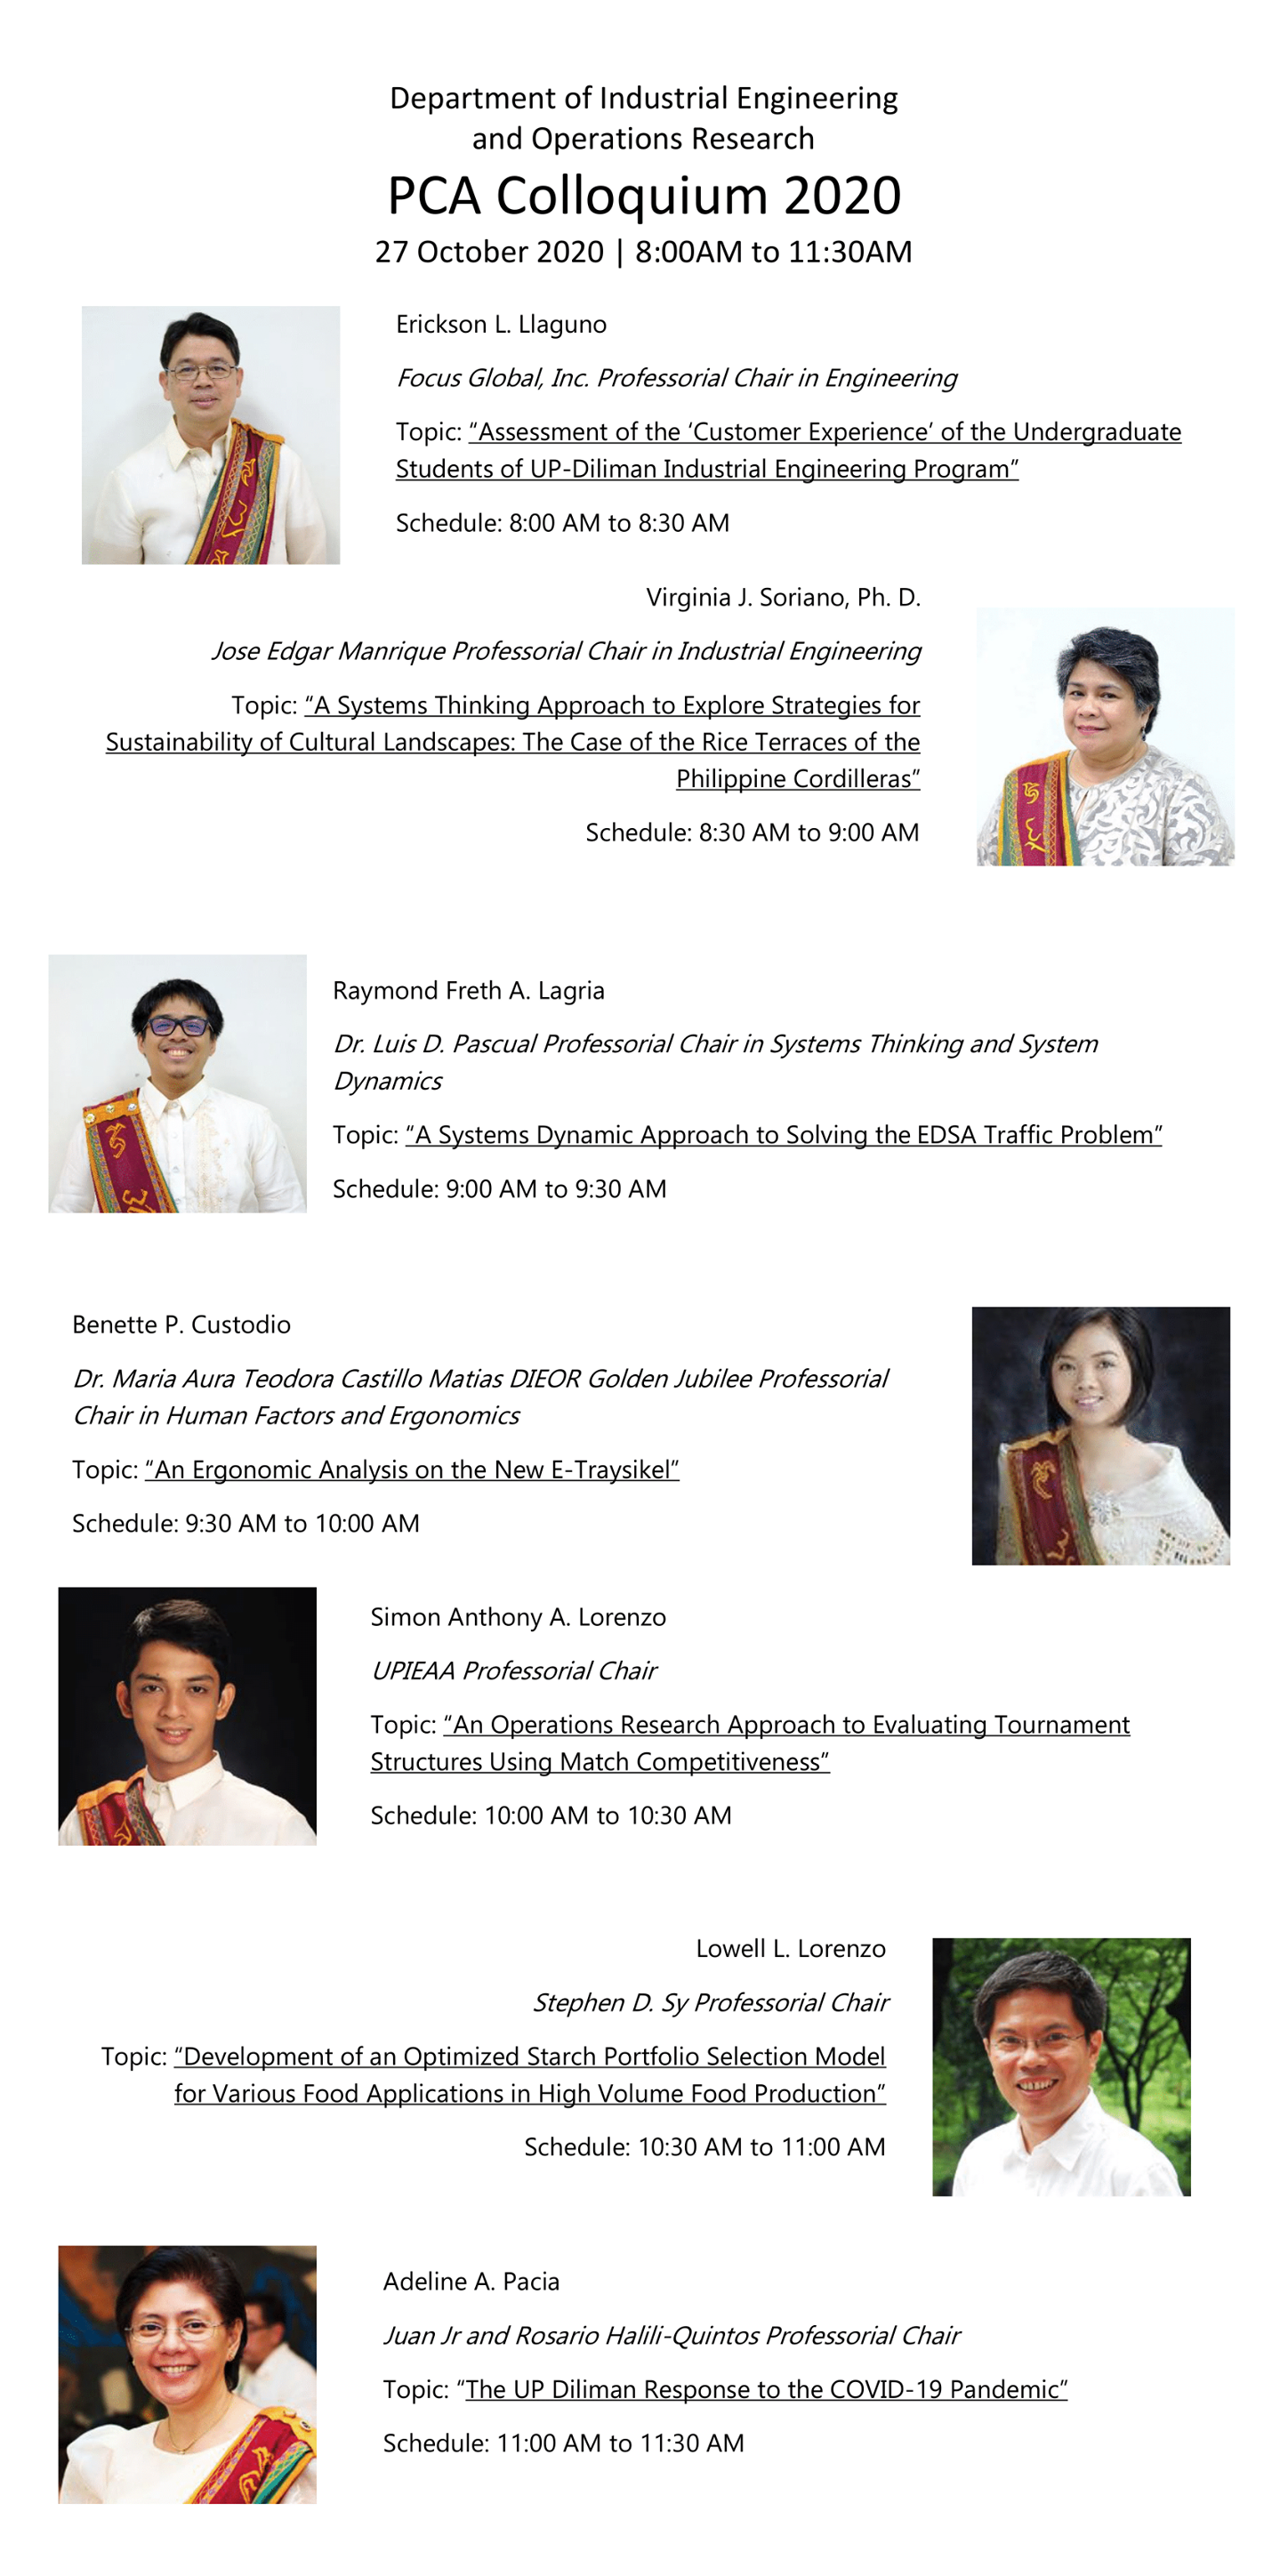 UP Department of Industrial Engineering and Operations research PCA (Professorial Chair Awards) Colloquium